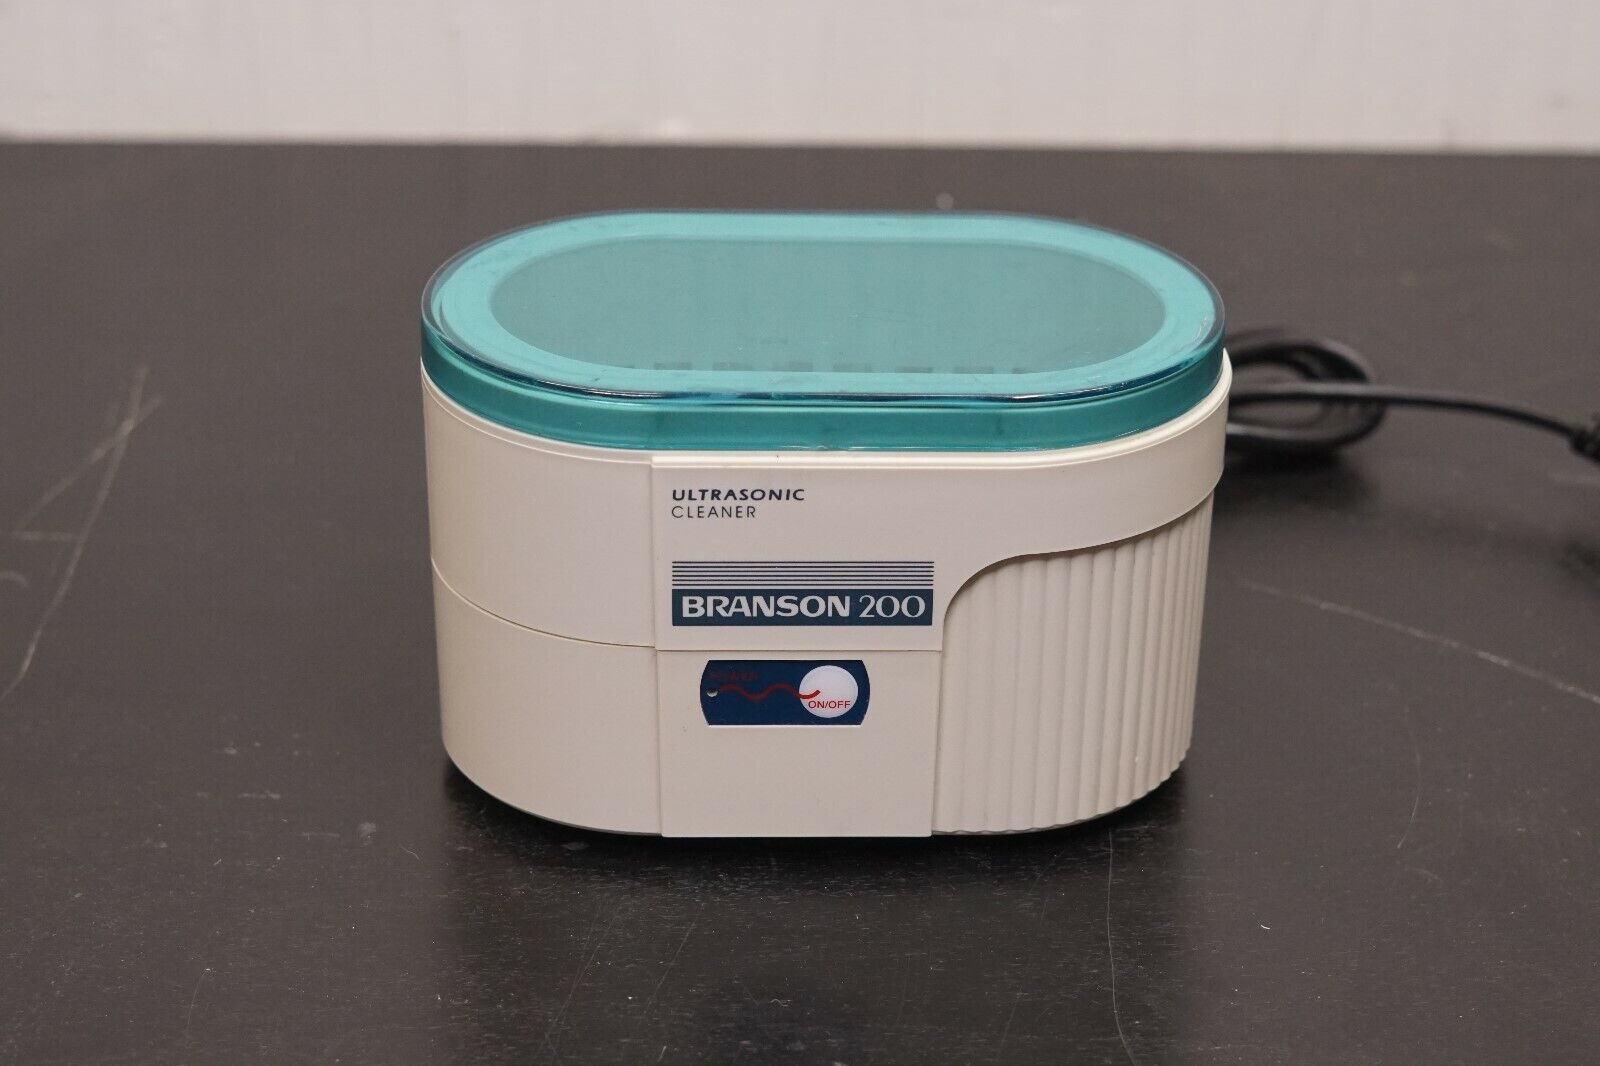 Branson 200 Ultrasonic Cleaner - Ophthalmic